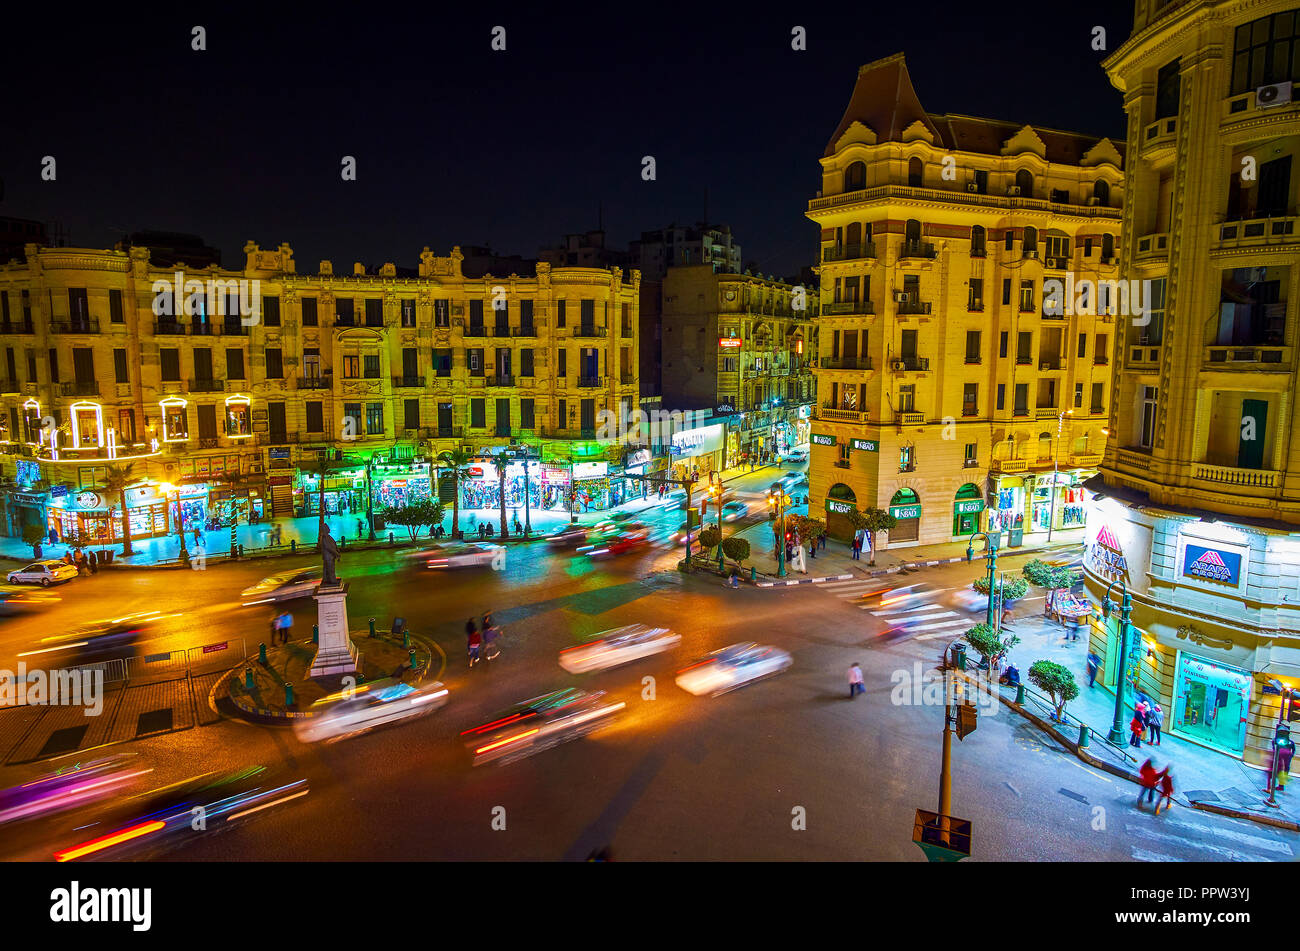 CAIRO, EGYPT - DECEMBER 23, 2017: The fast paced life of Talaat Harb Square with bright stores' showcases, numerous cars and chaotic pedestrian moveme - Stock Image